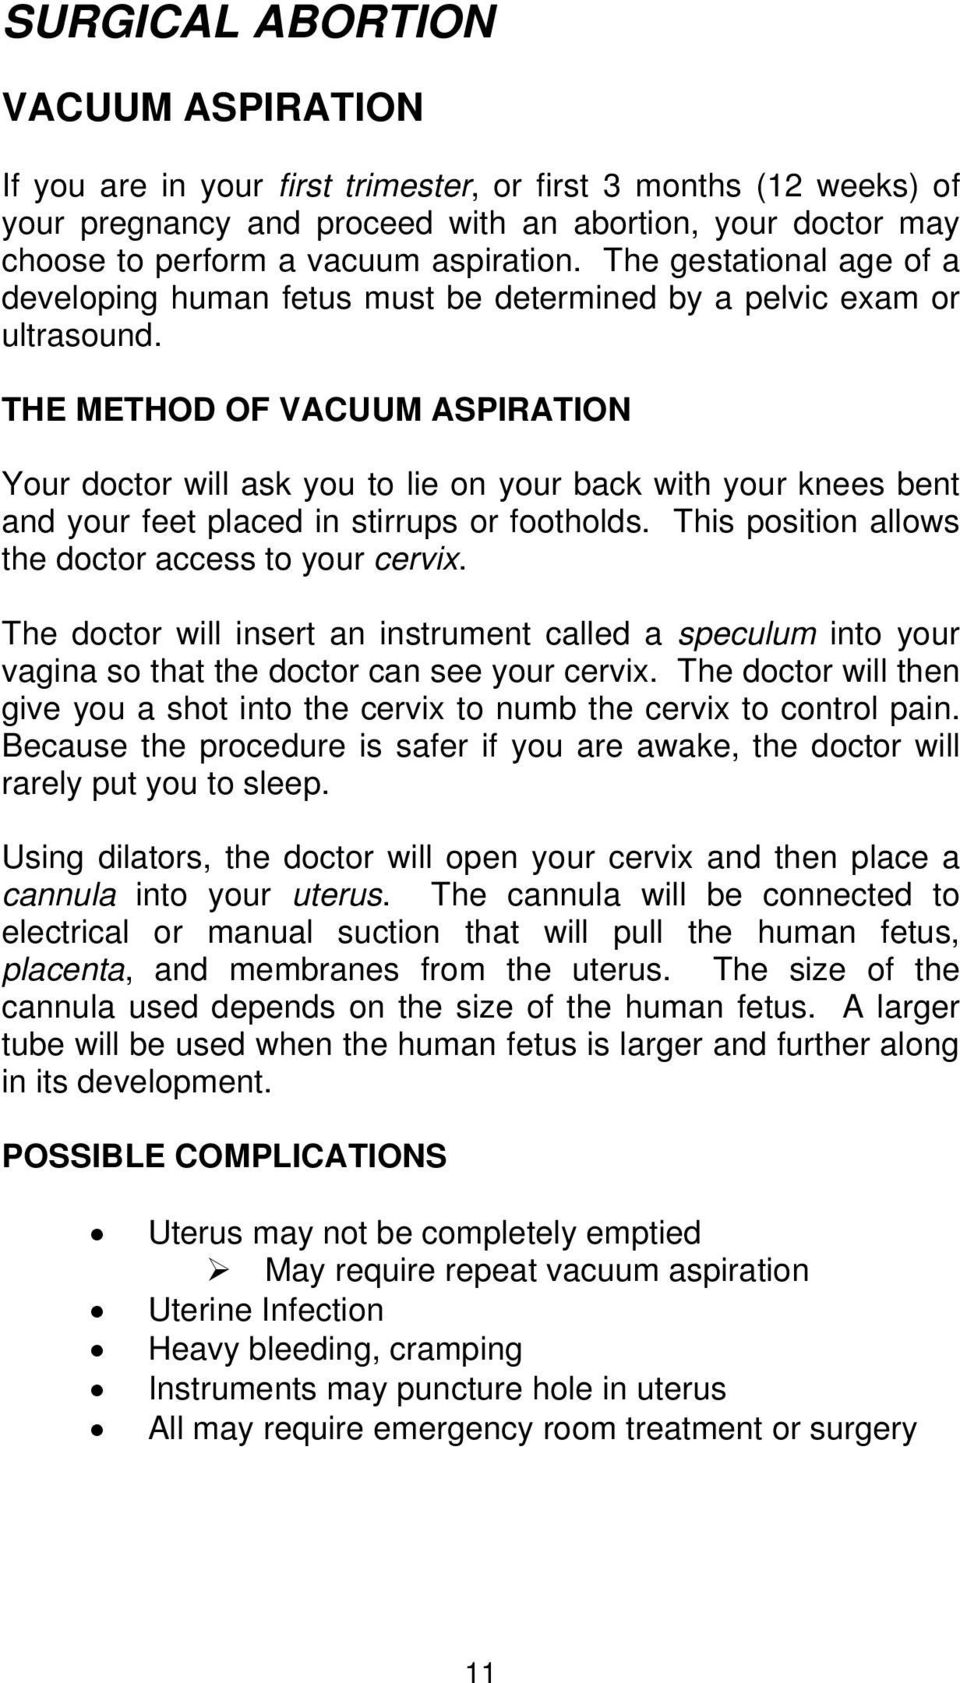 THE METHOD OF VACUUM ASPIRATION Your doctor will ask you to lie on your back with your knees bent and your feet placed in stirrups or footholds. This position allows the doctor access to your cervix.